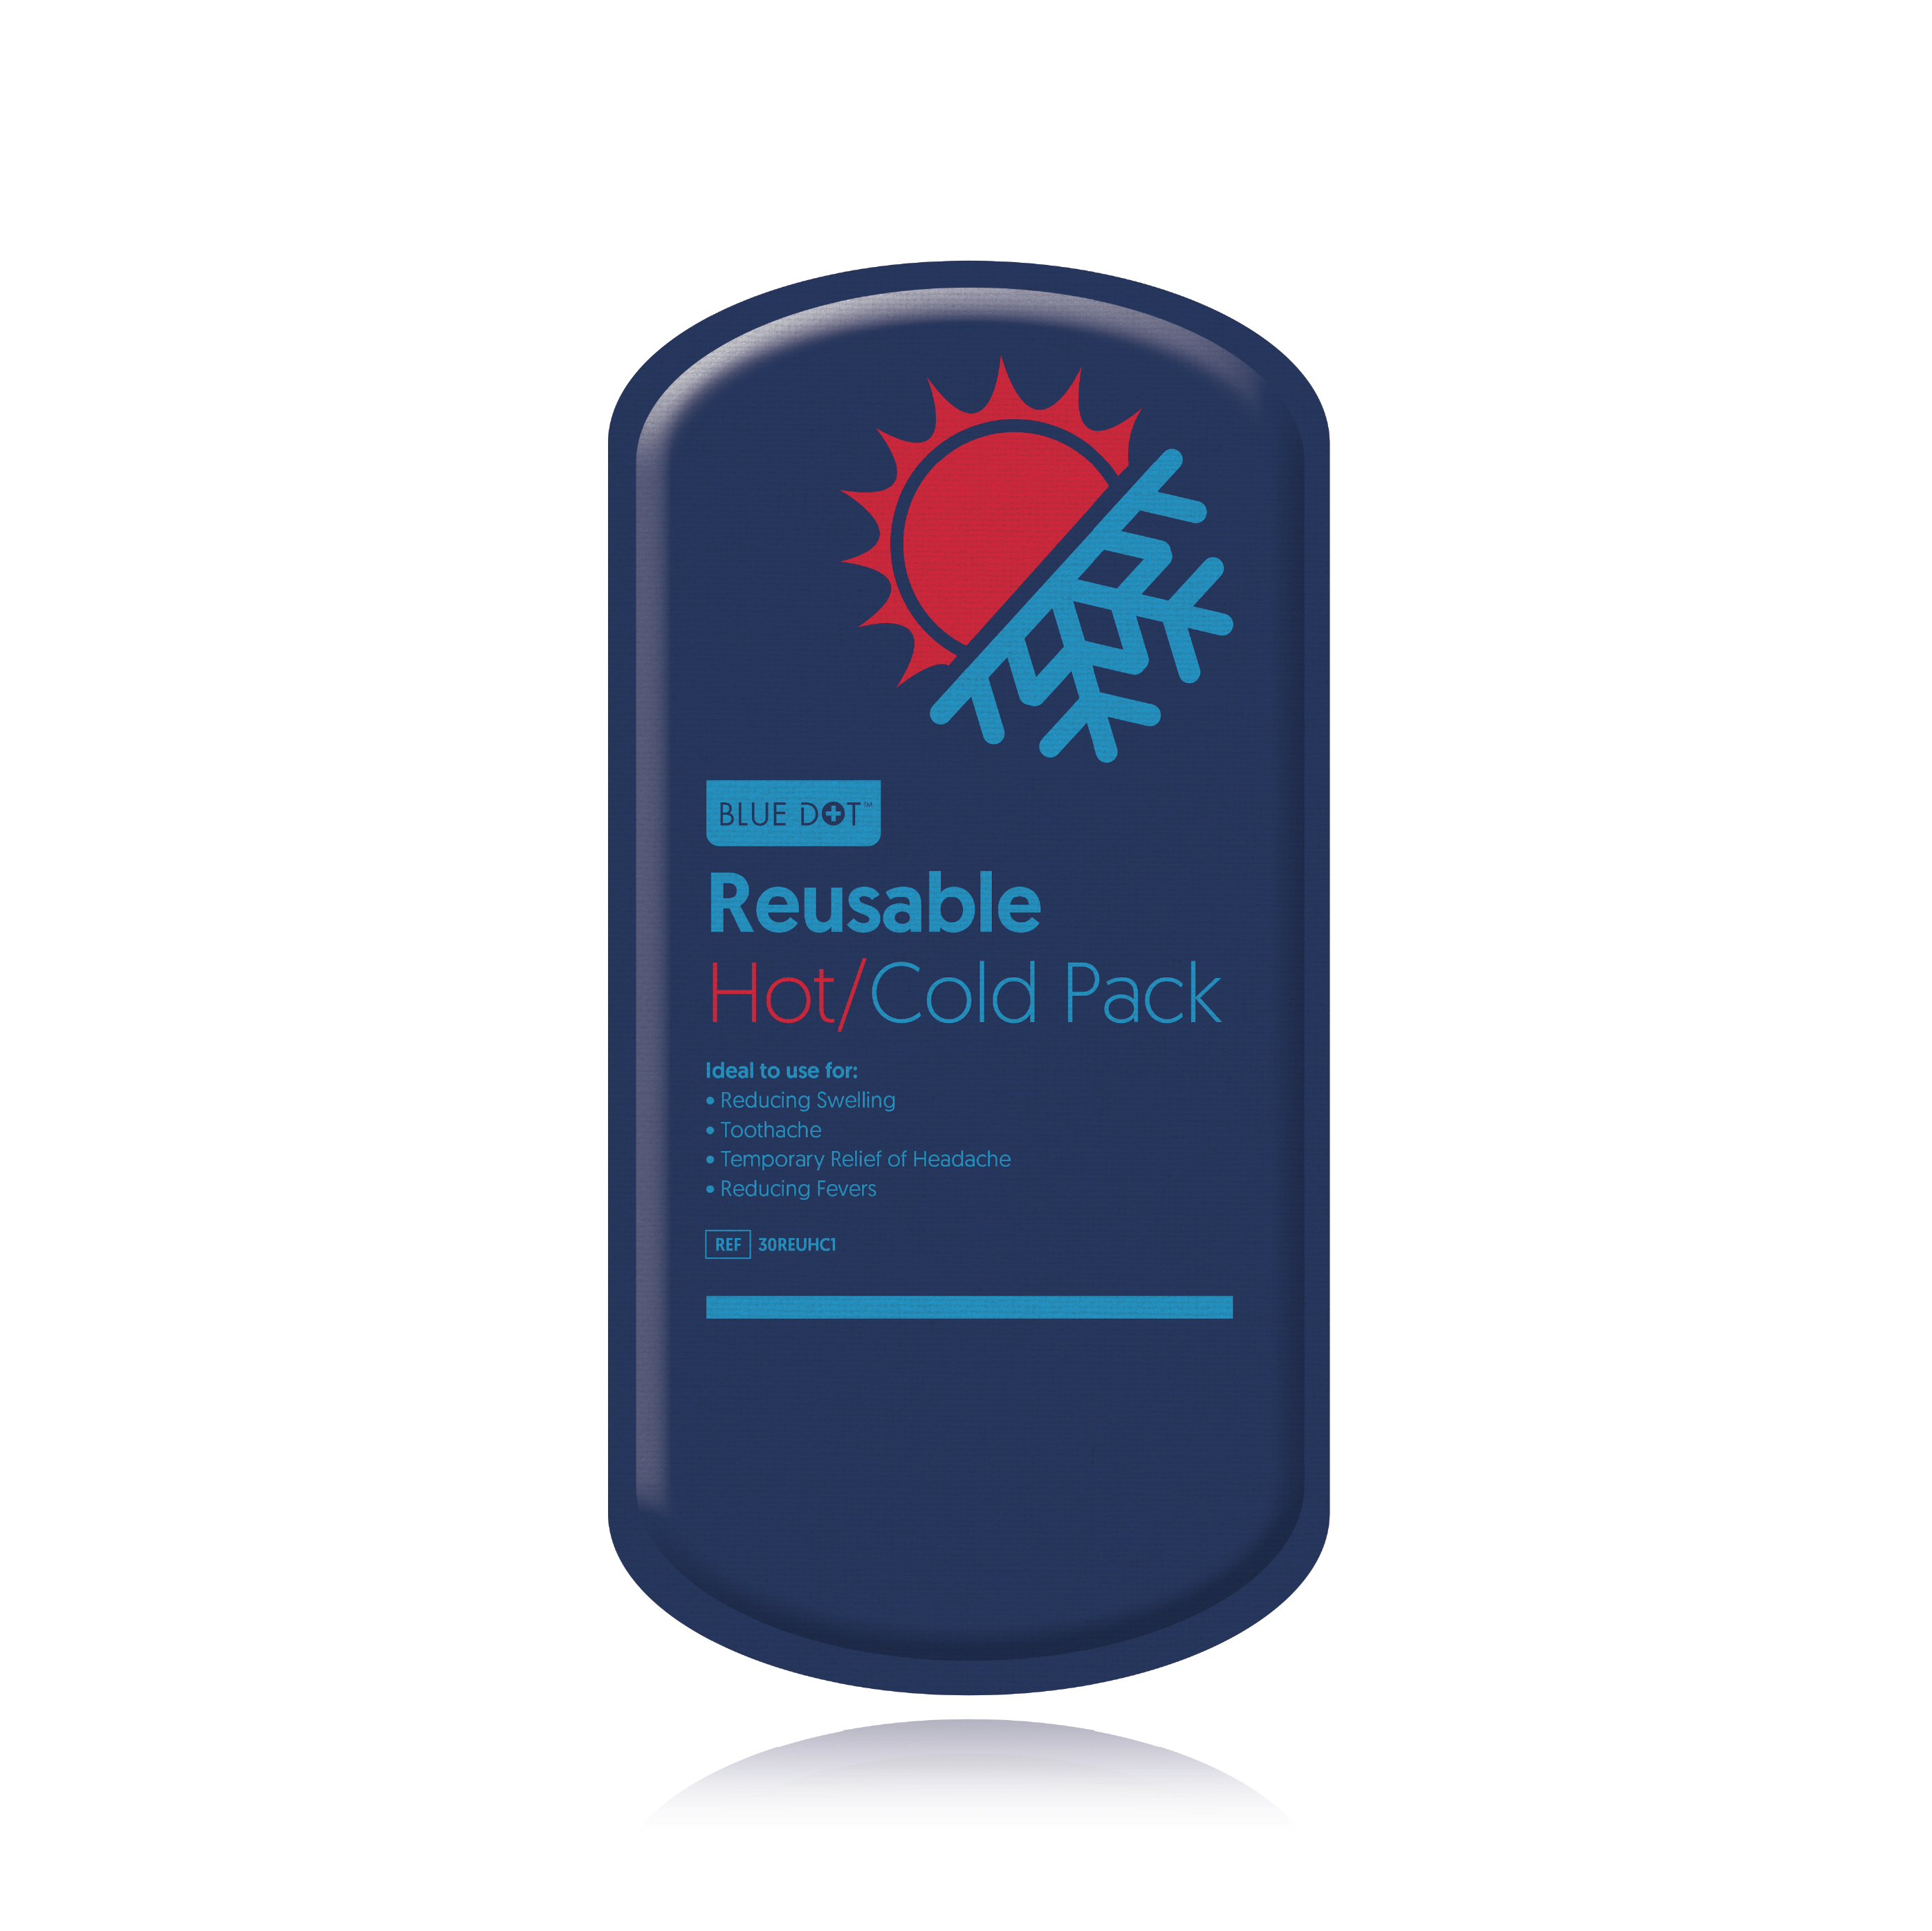 Reusable Cold & Hot Pack